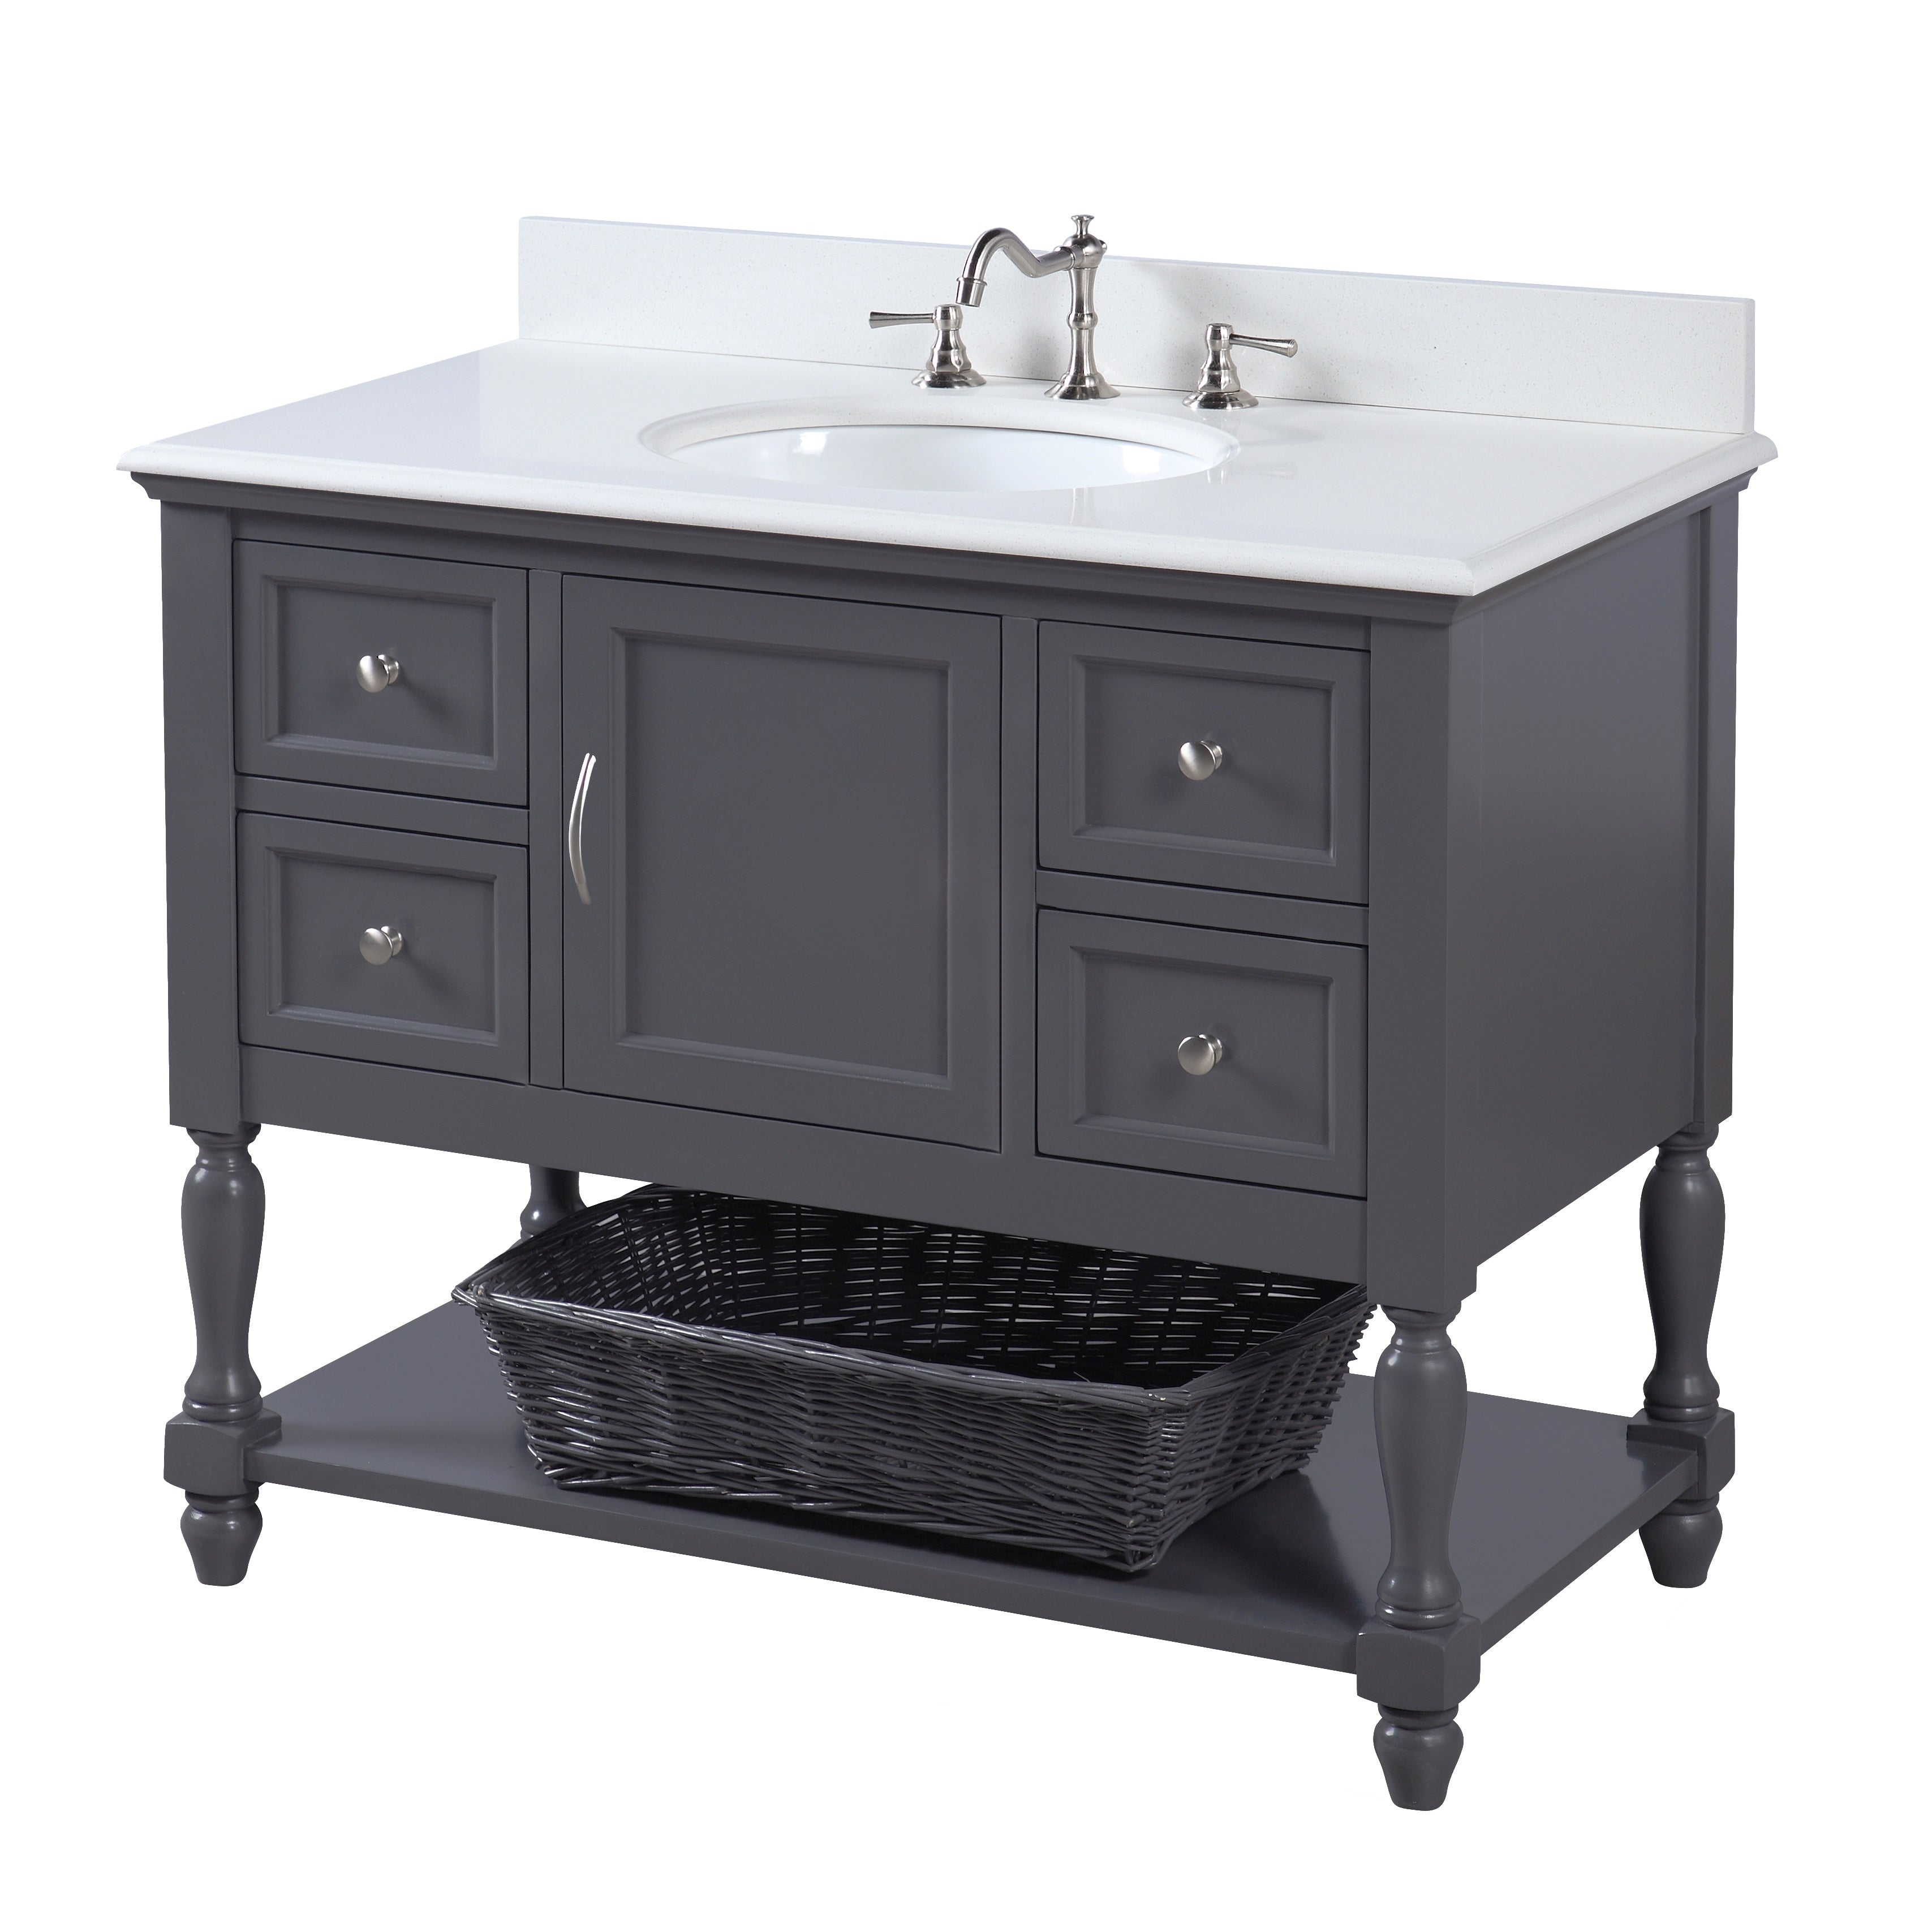 Beverly 42-inch Vanity (Quartz/Charcoal Gray)